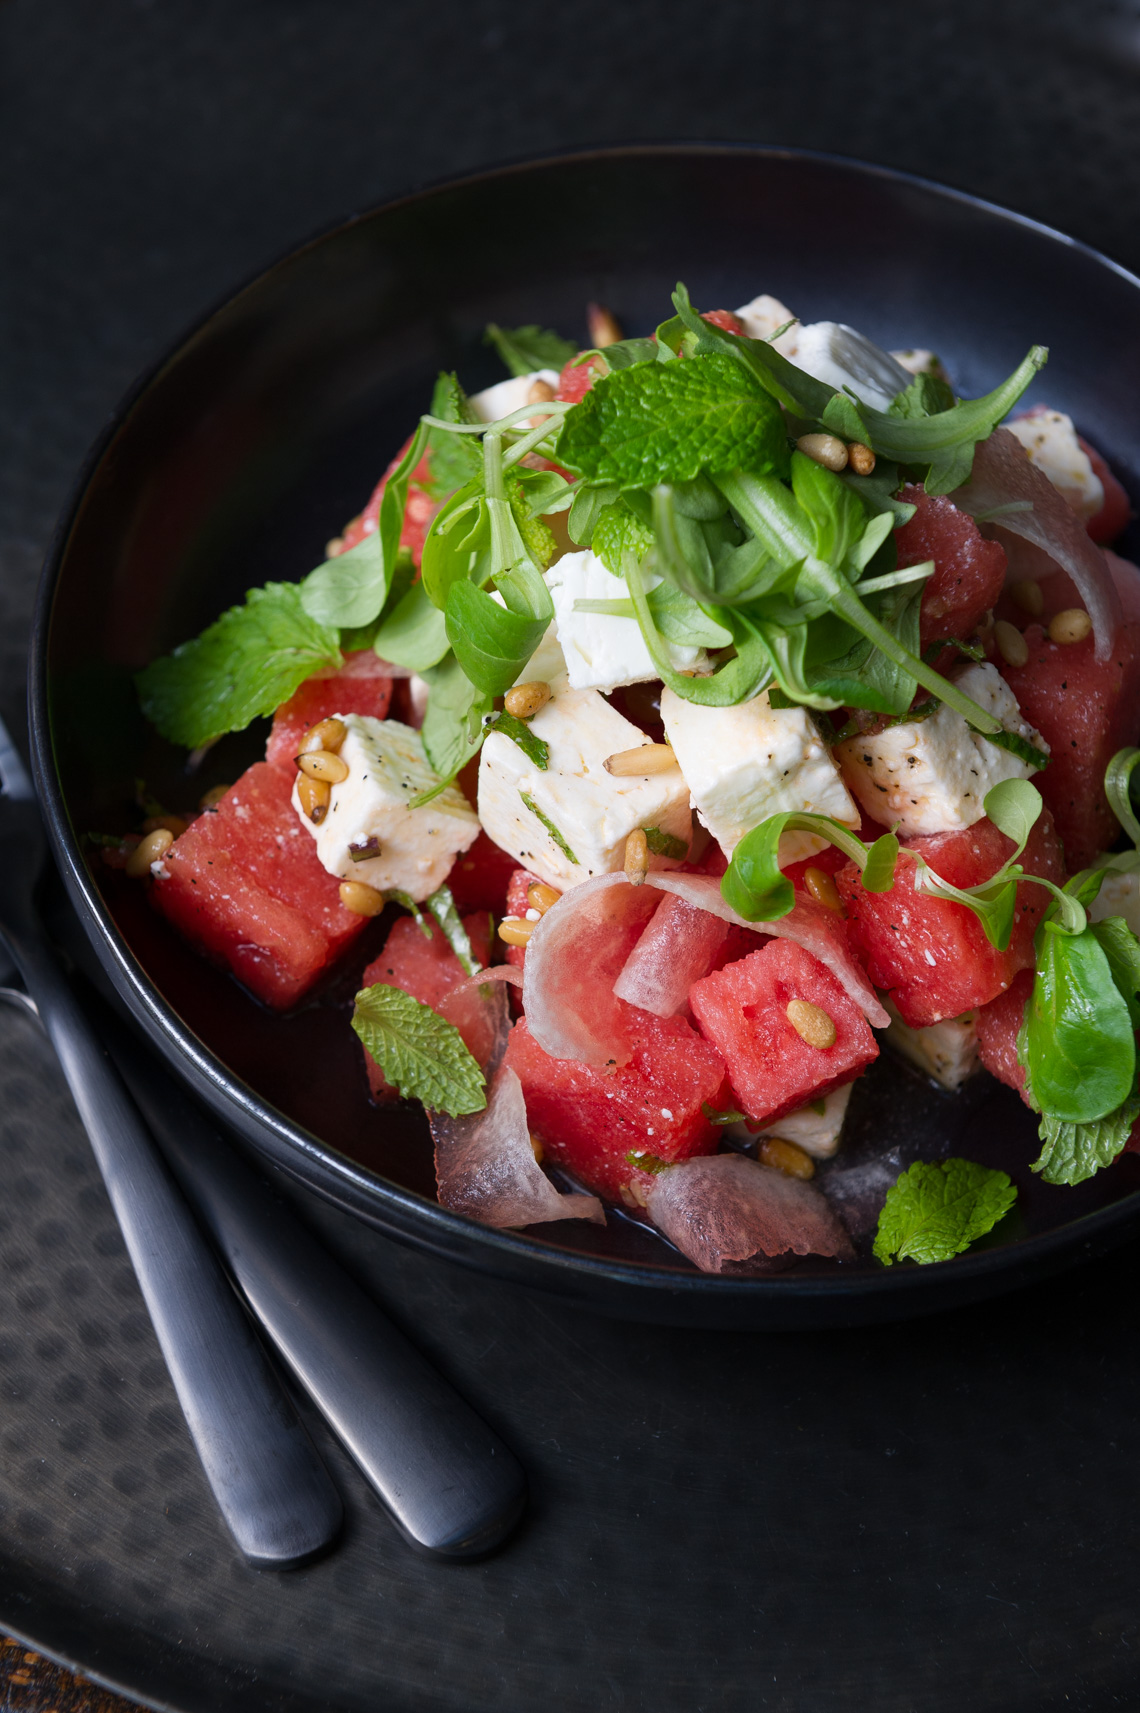 NYC Food Photographer - Watermelon And Feta Salad